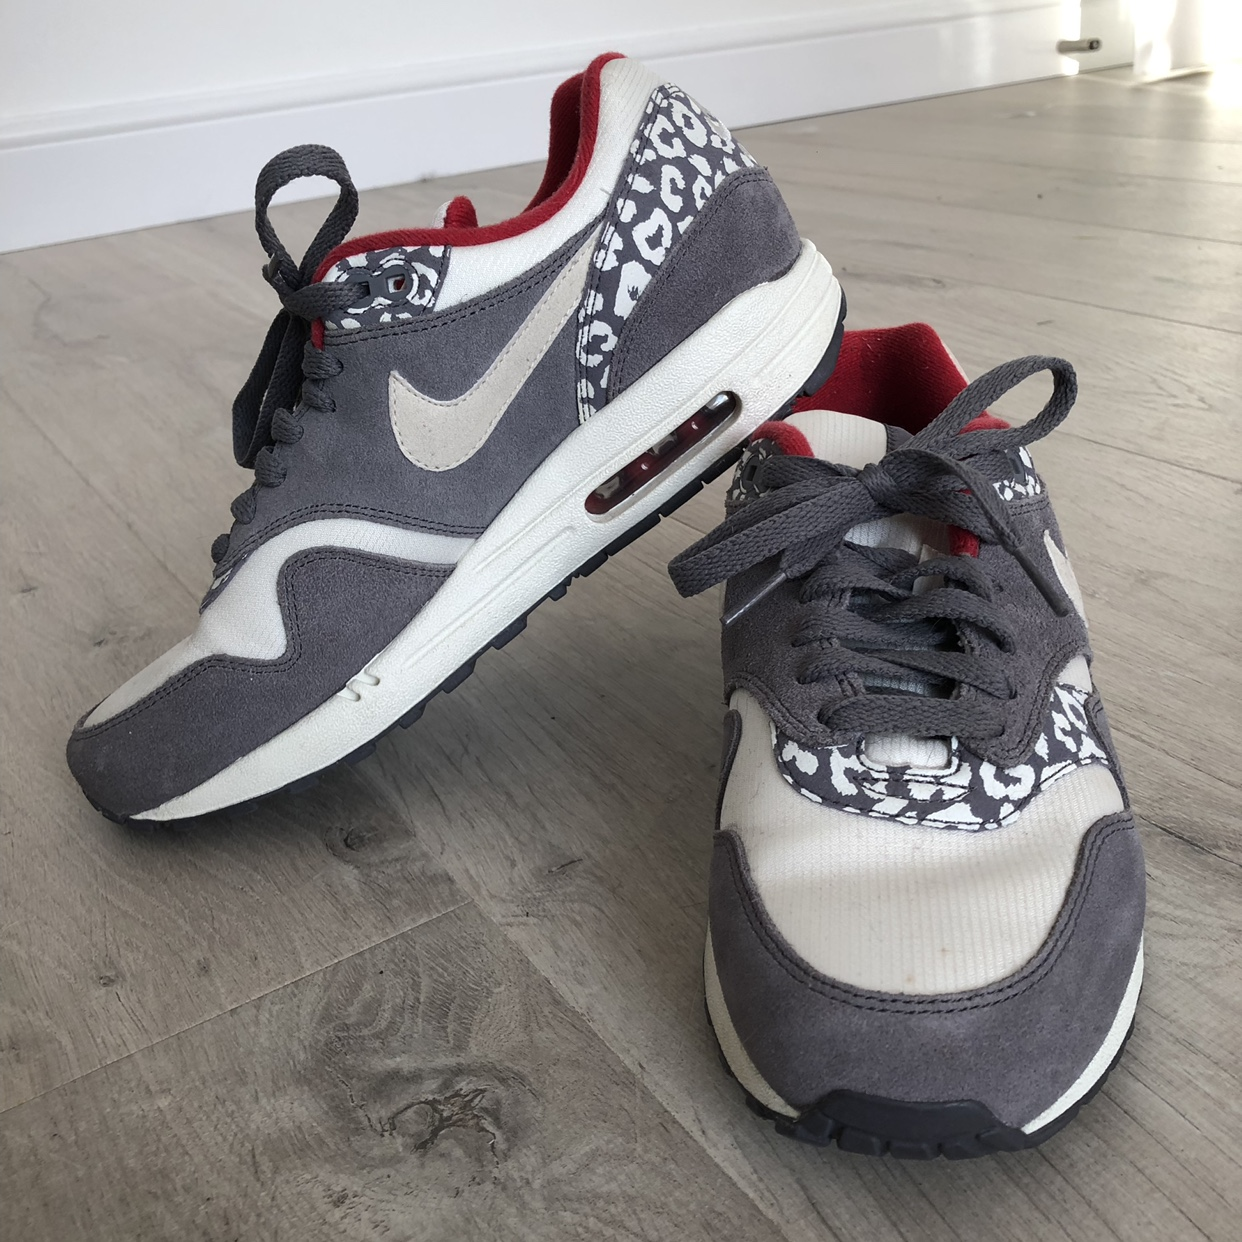 Nike Air Max 1 'Leopard' trainers, size UK 6. Have Depop